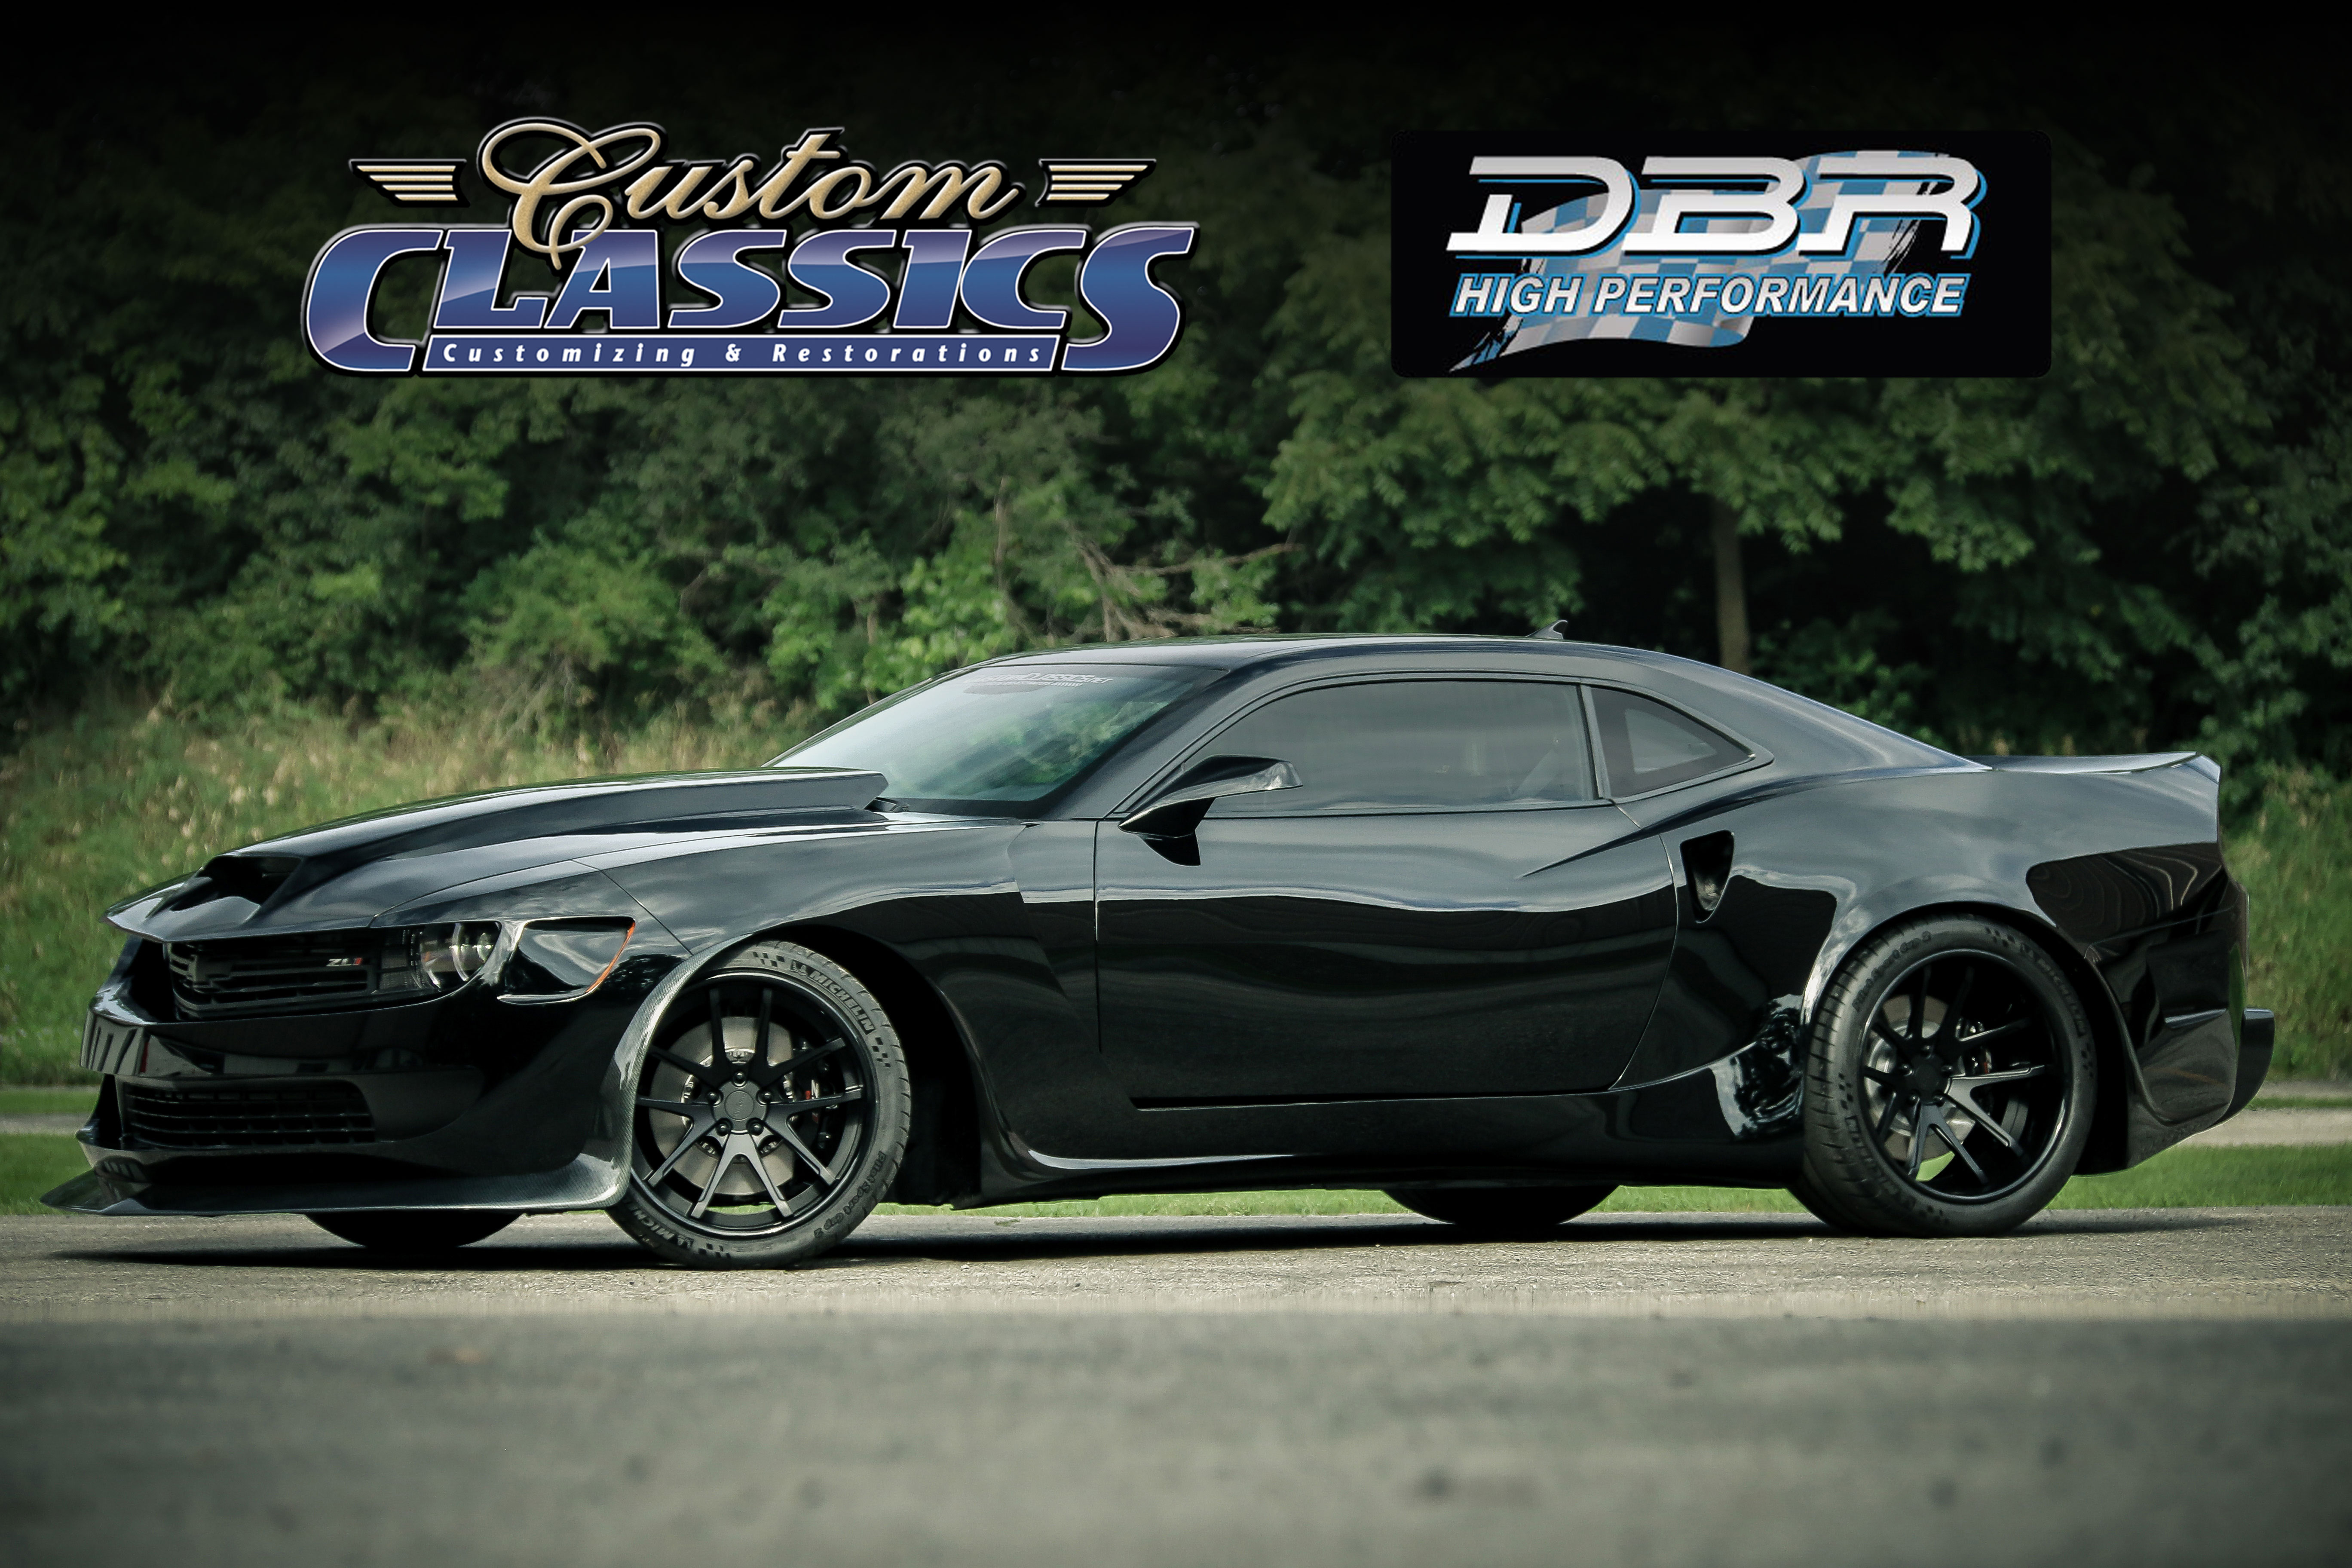 camaro wide body images diagram writing sample ideas and